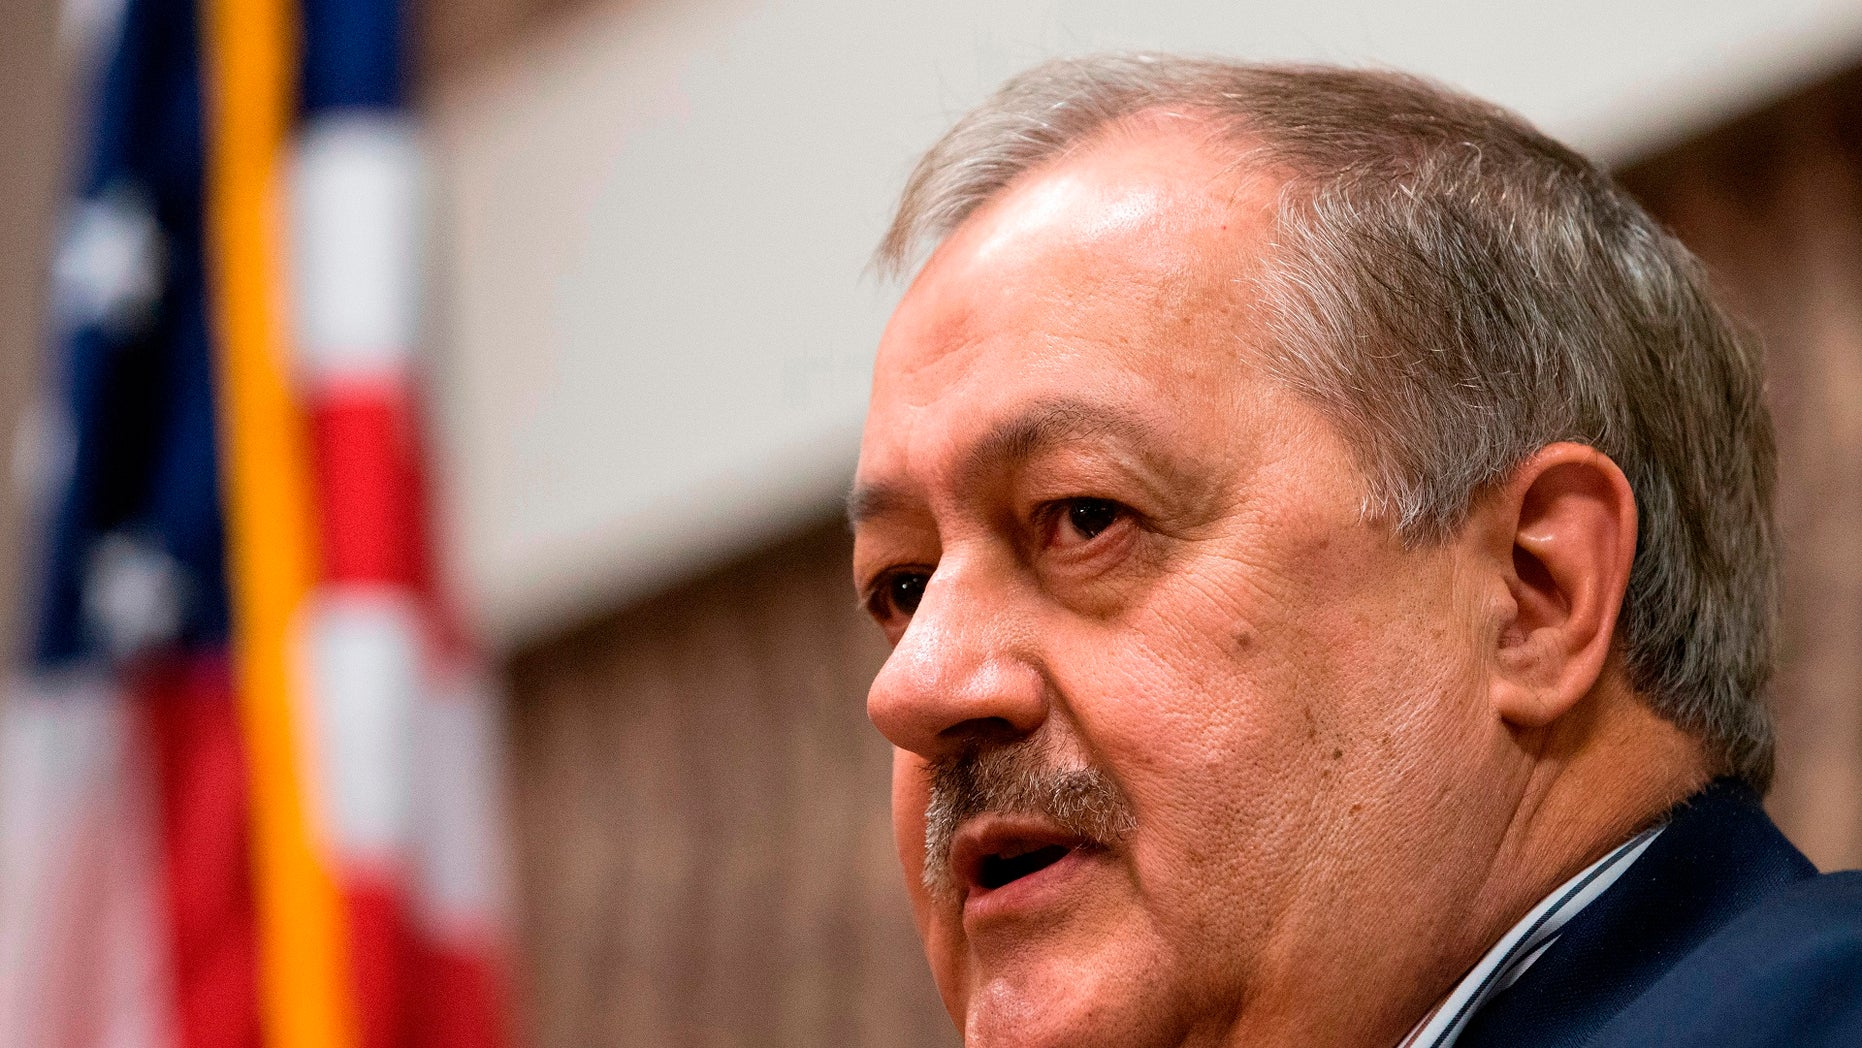 Don Blankenship announced Monday he'd be filing official paperwork to run for U.S. Senate as a member of the Constitution Party.